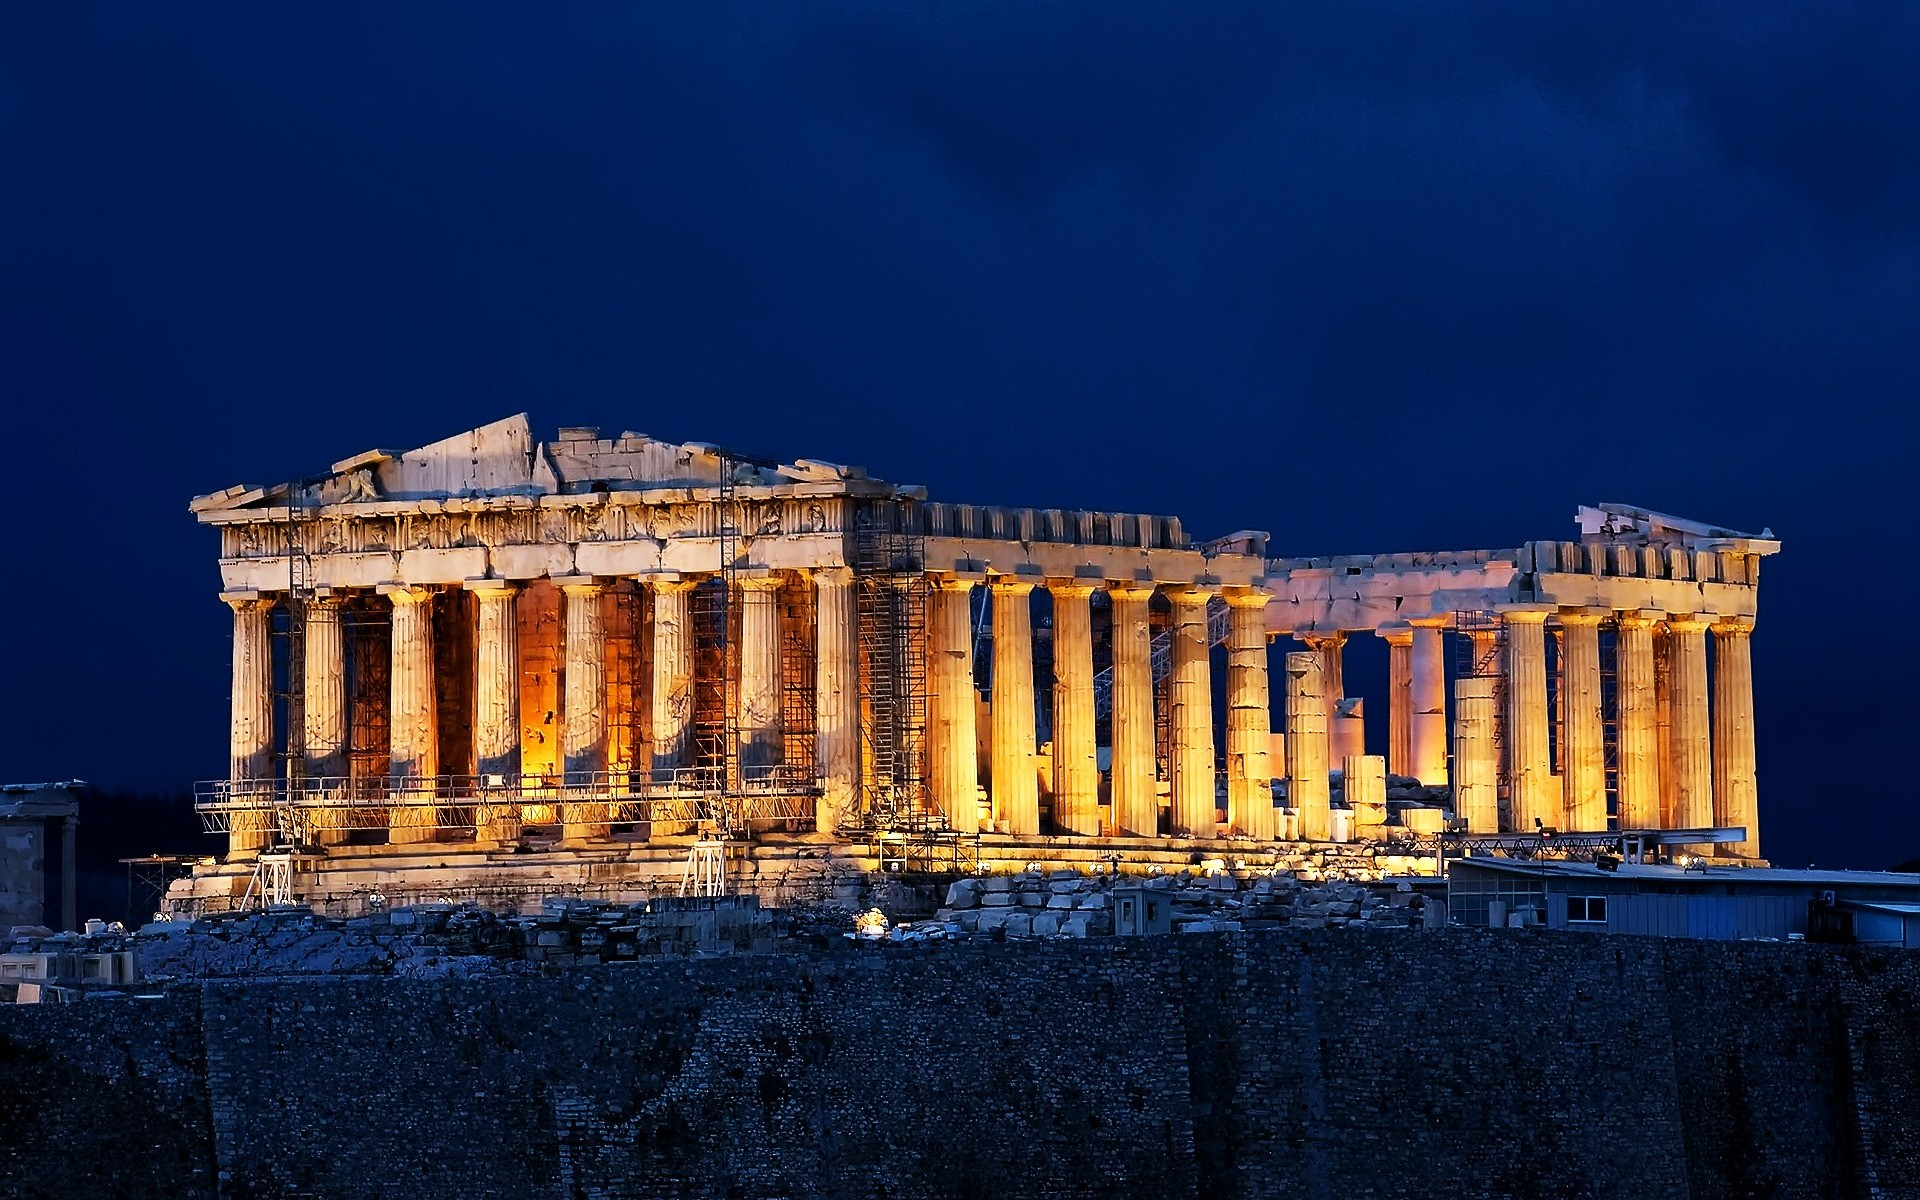 a history of the parthenon temple The history of the parthenon 447-432 bce the construction of the parthenon began in 447 bce pericles, a brilliant leader of athens, appointed phidias to design the magnificent temple.